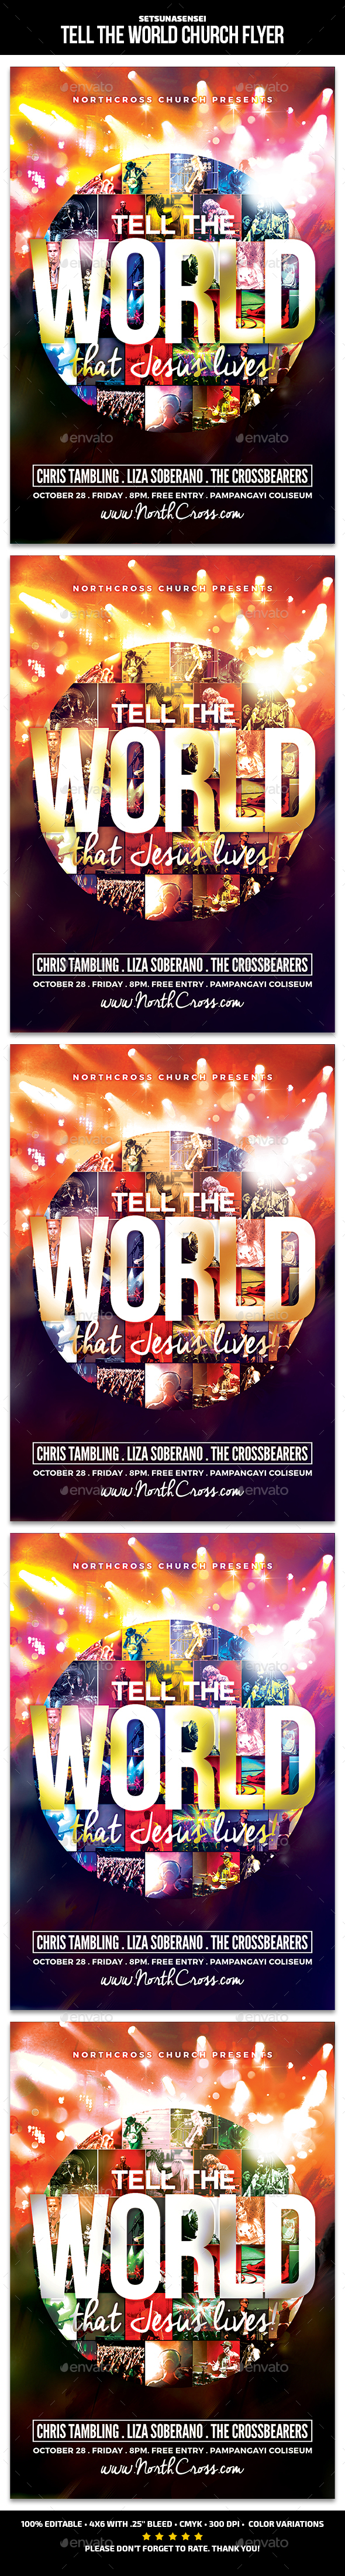 Tell the World Church Flyer - Church Flyers